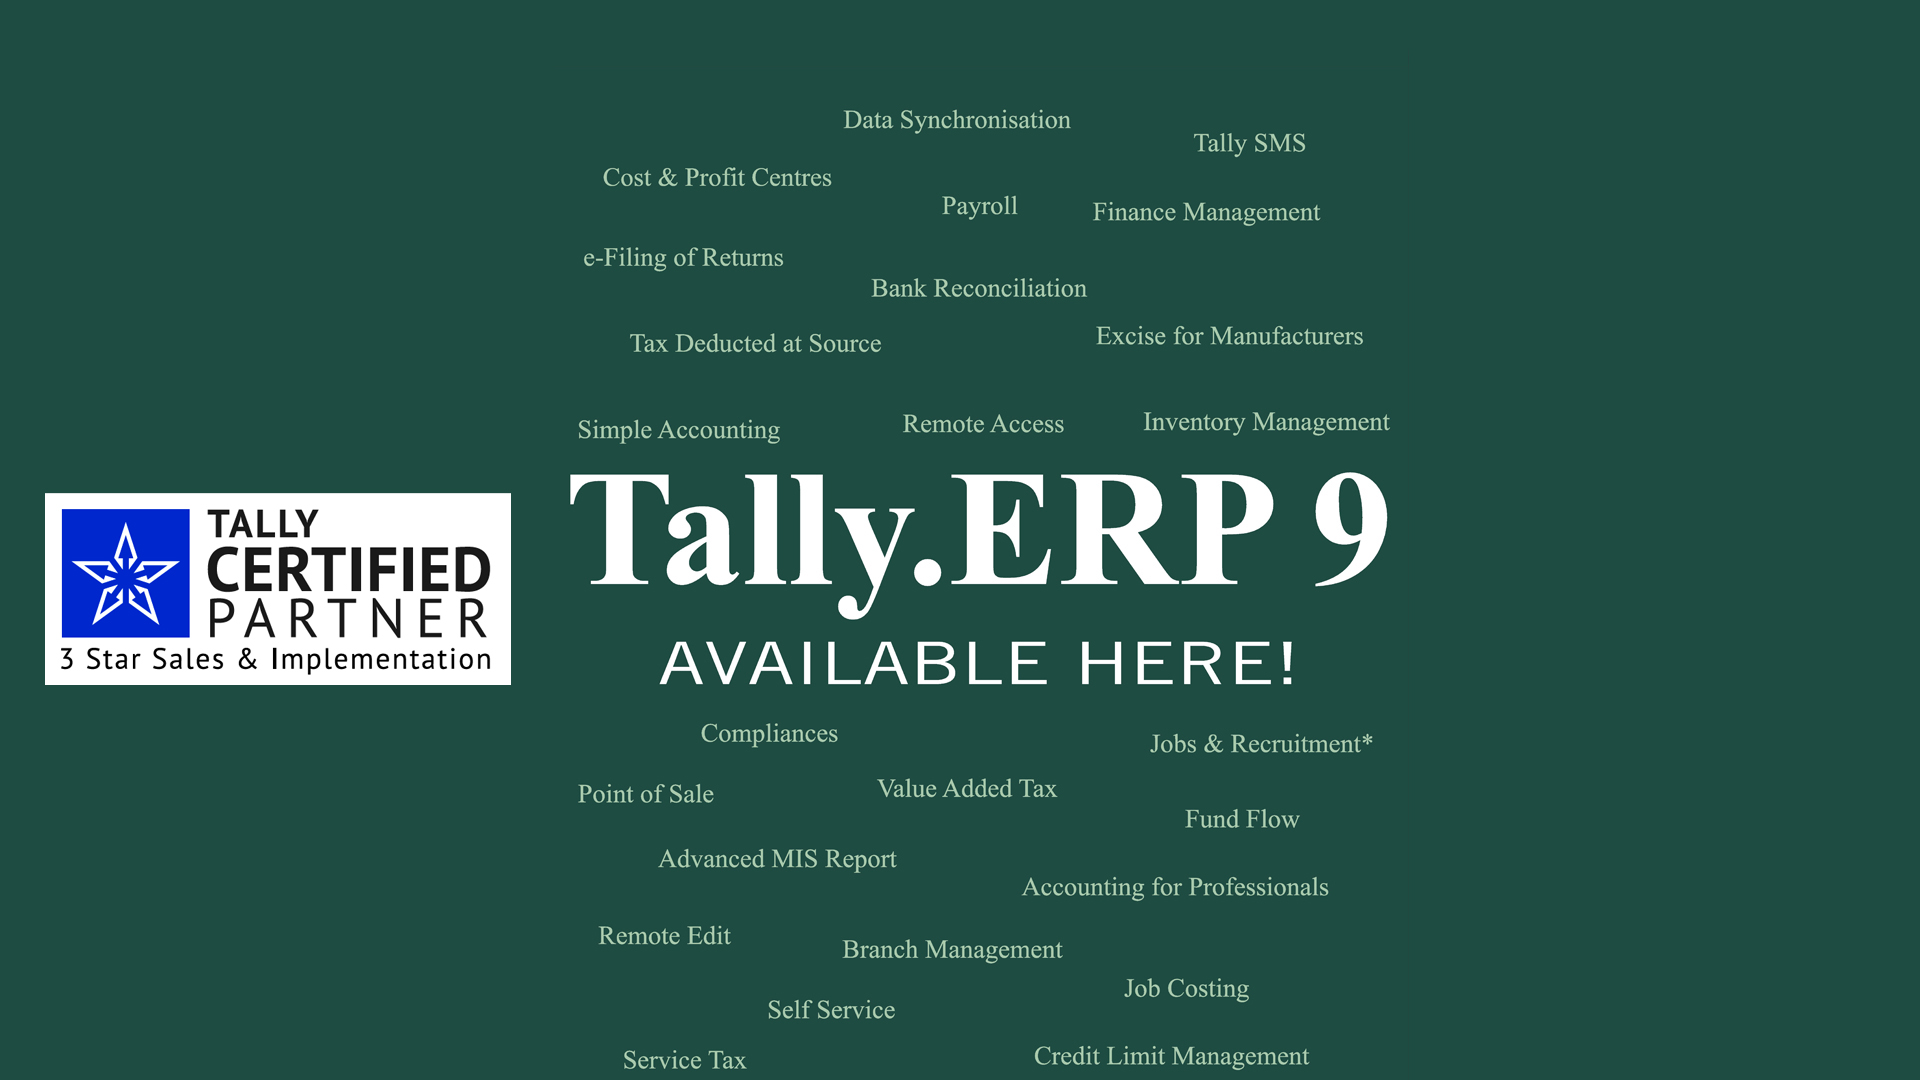 Tally ERP 9 Available Here